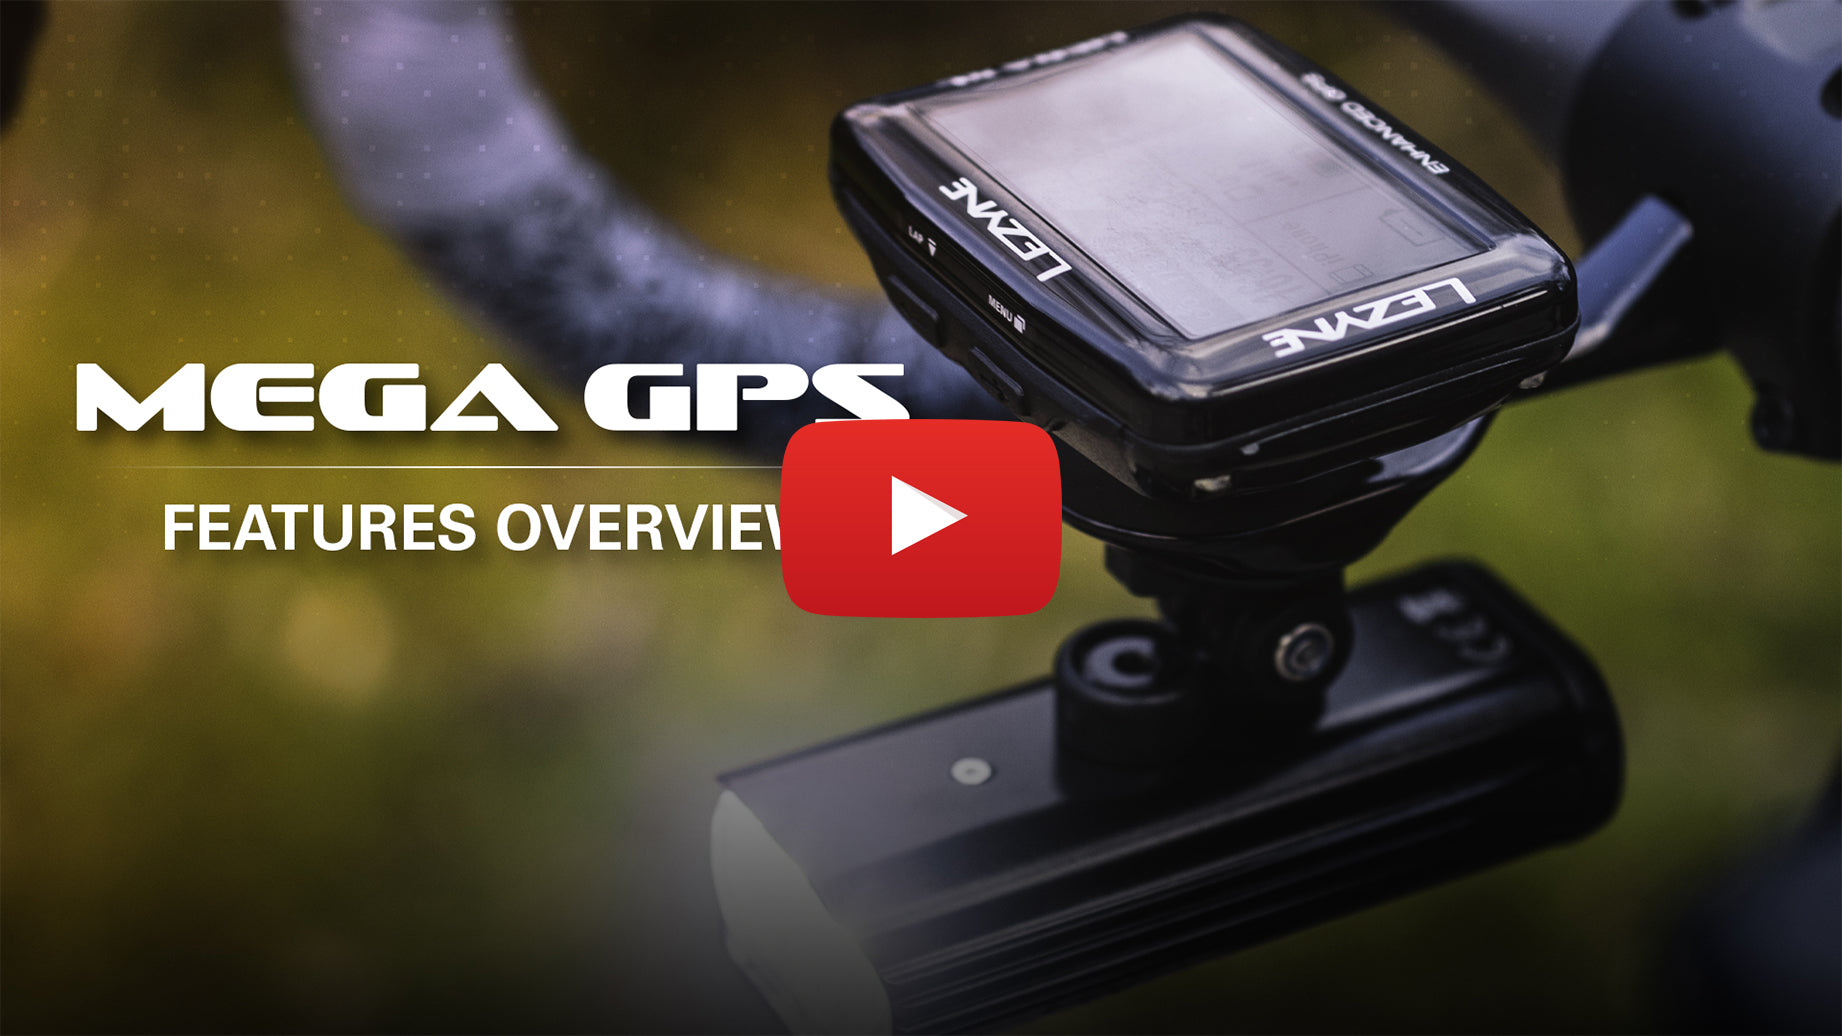 Lezyne Mega GPS Features Overview